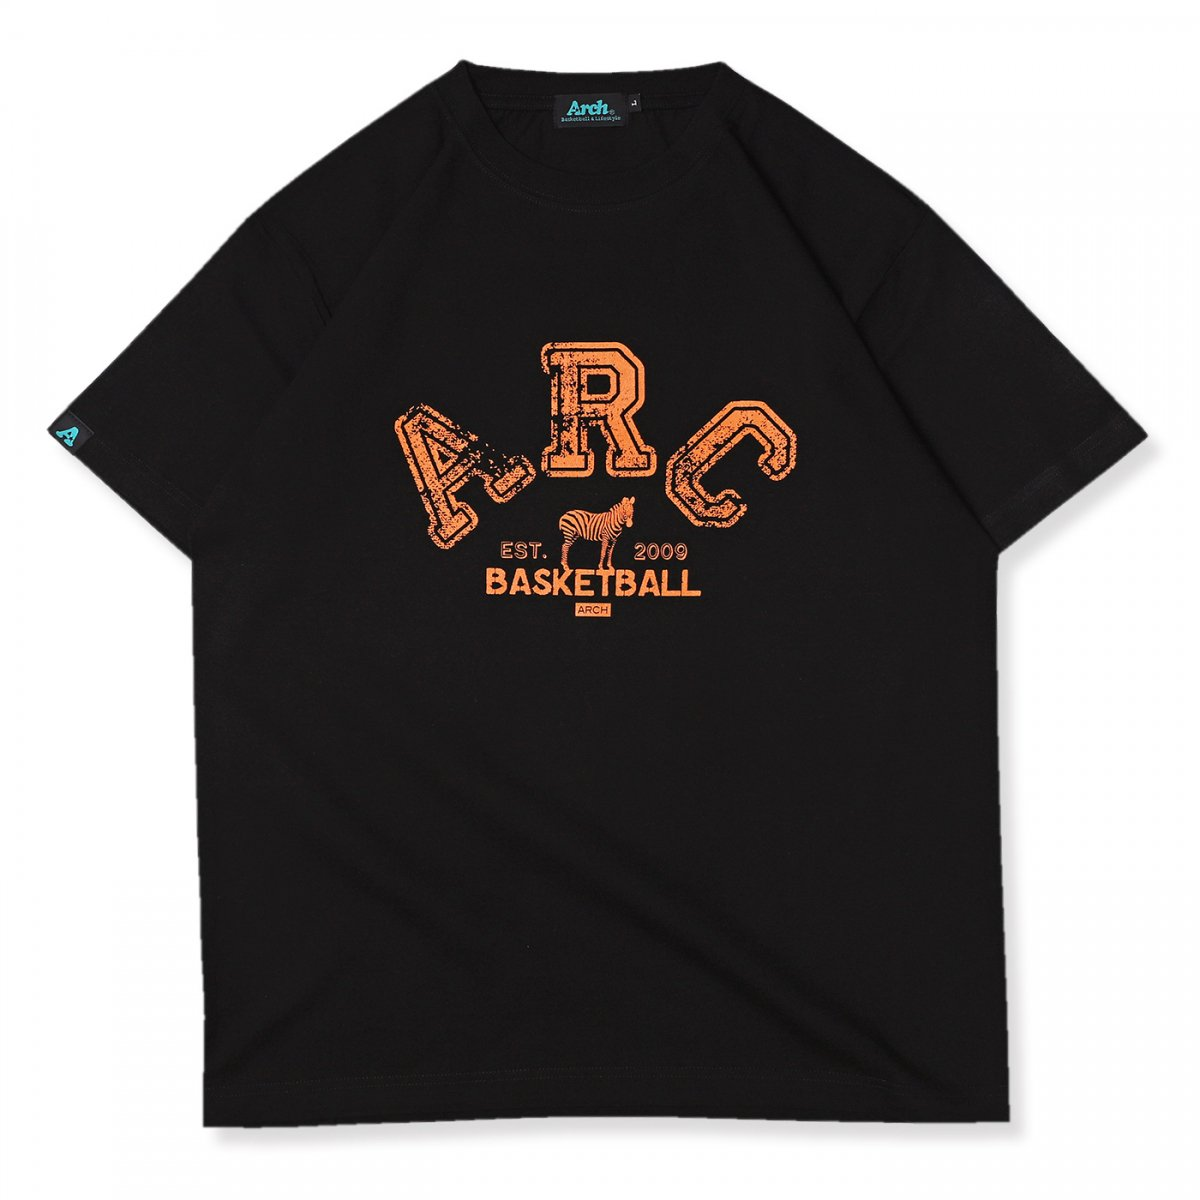 ARC zebra tee 【black】